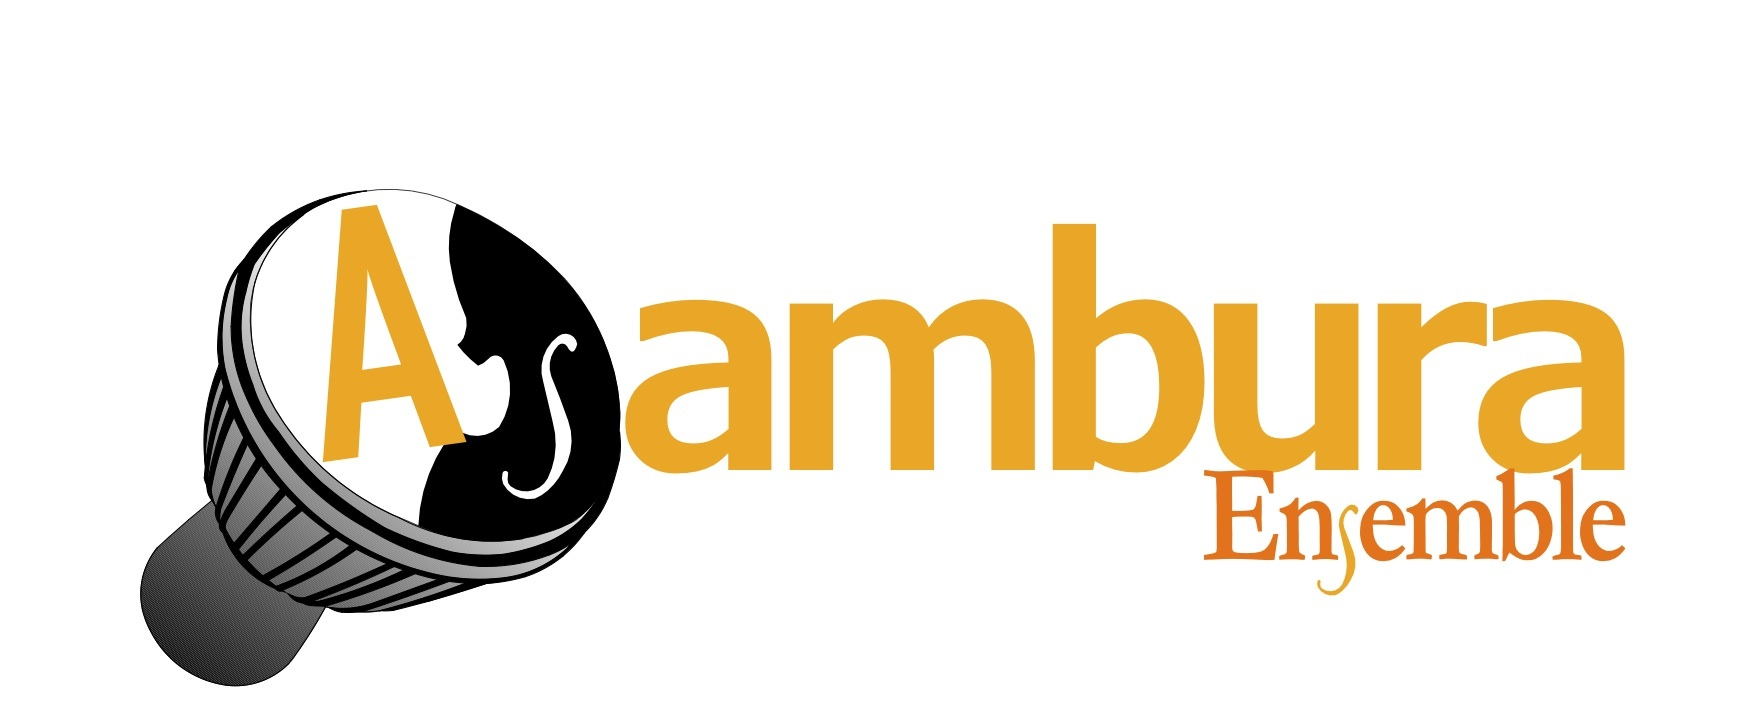 Asambura Logo orange Kopie